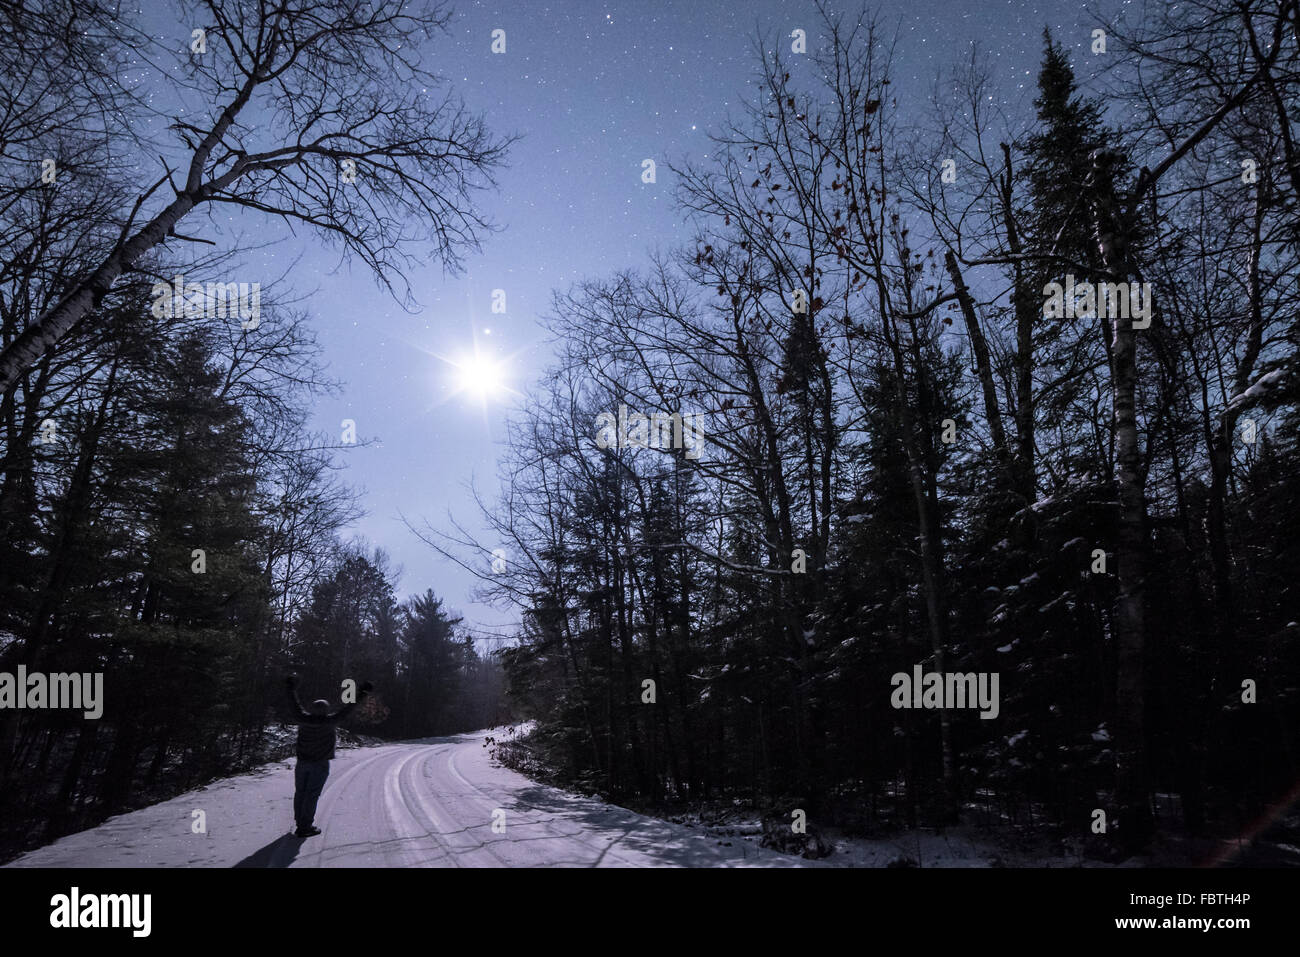 Standing on a snowy, forest road, arms raised in praise of the moon and the night sky. - Stock Image